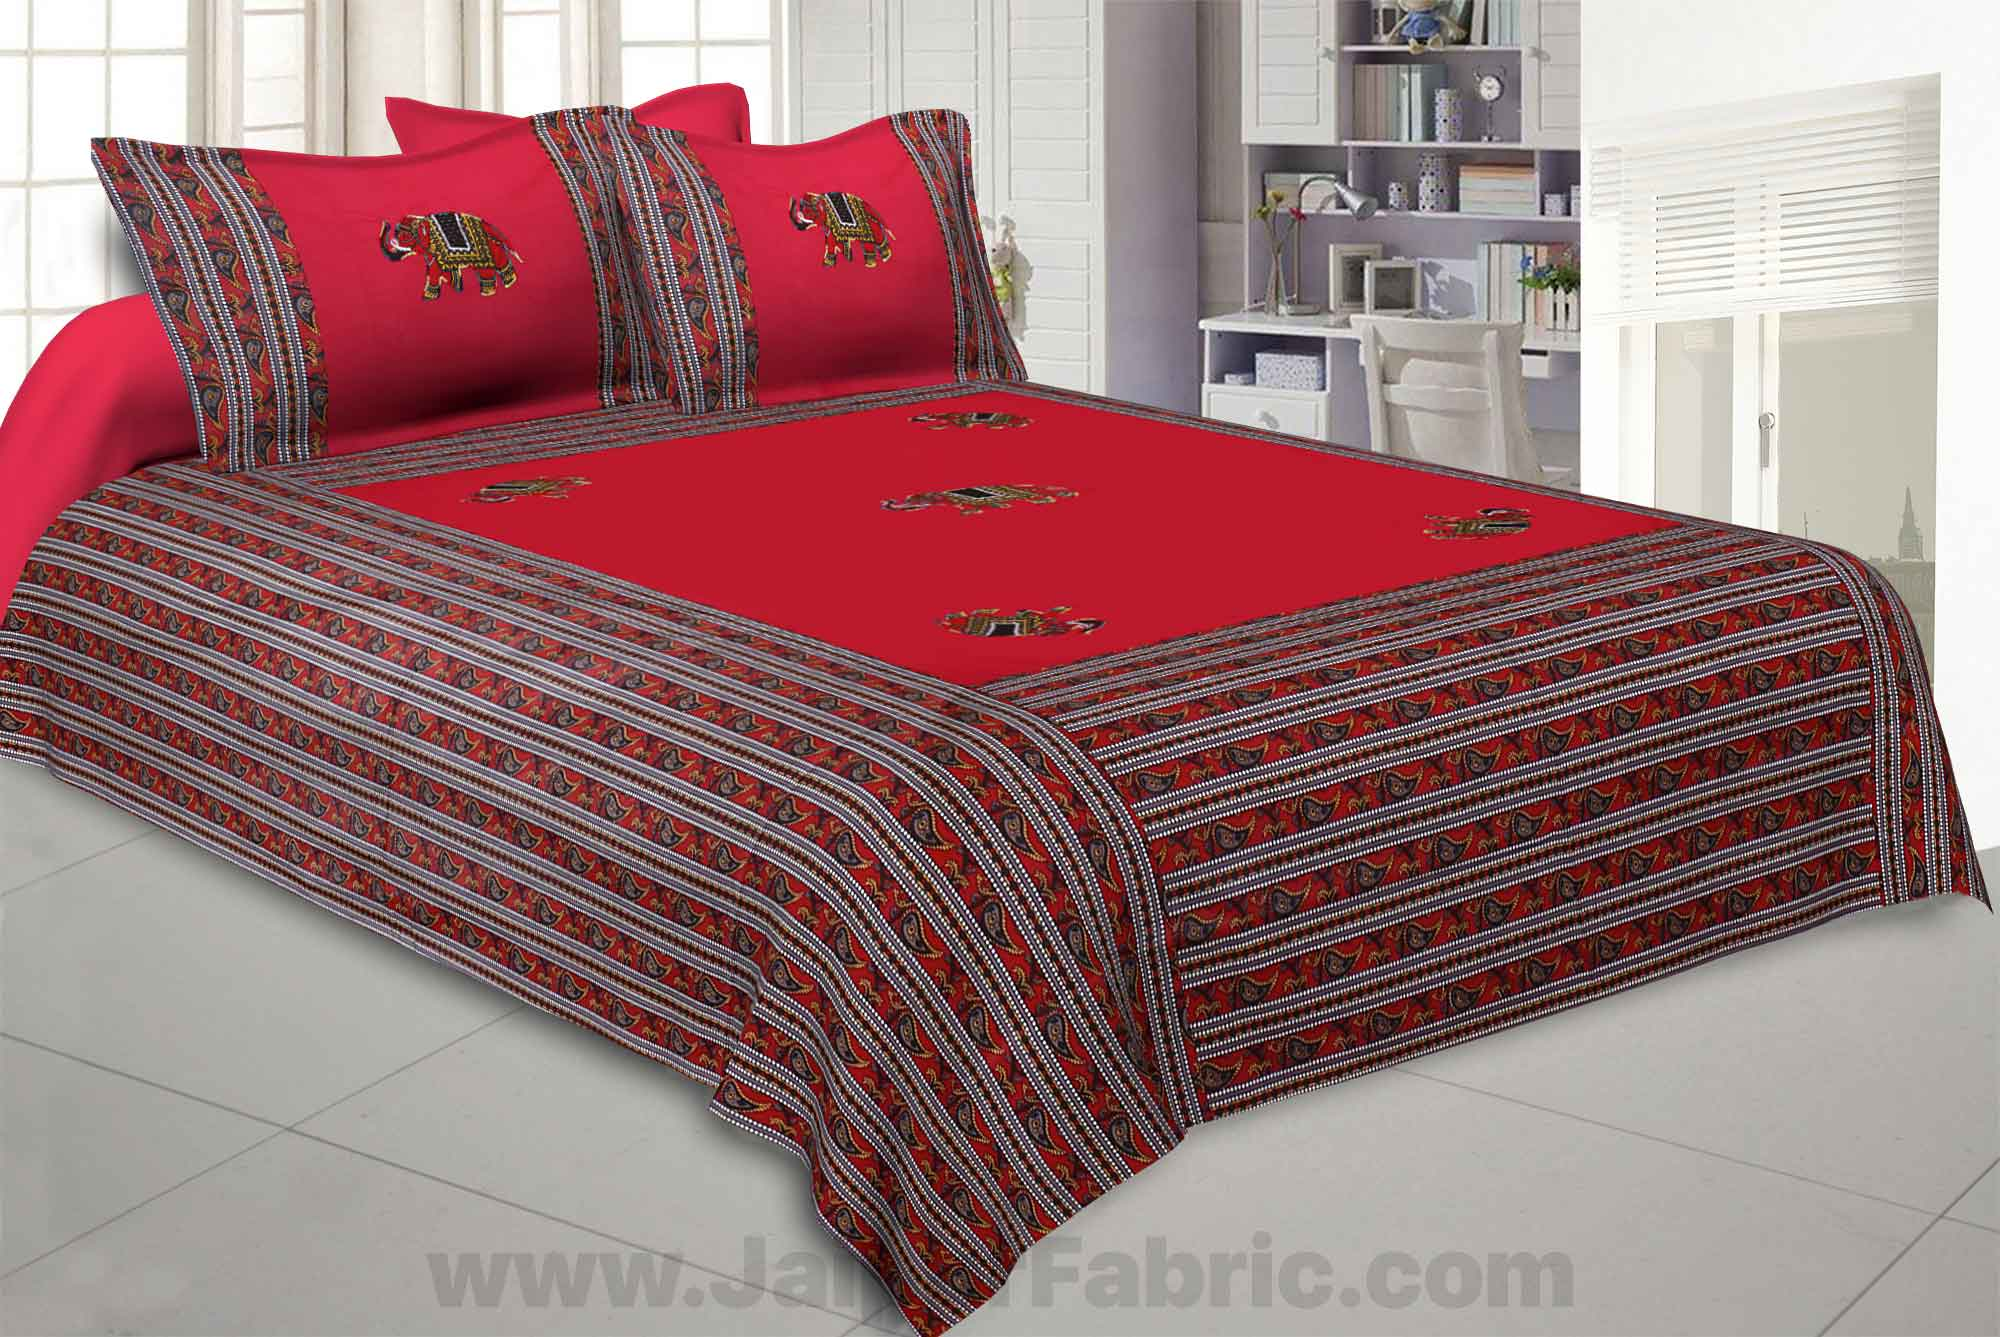 Applique Red Elephant Jaipuri  Hand Made Embroidery Patch Work Double Bedsheet